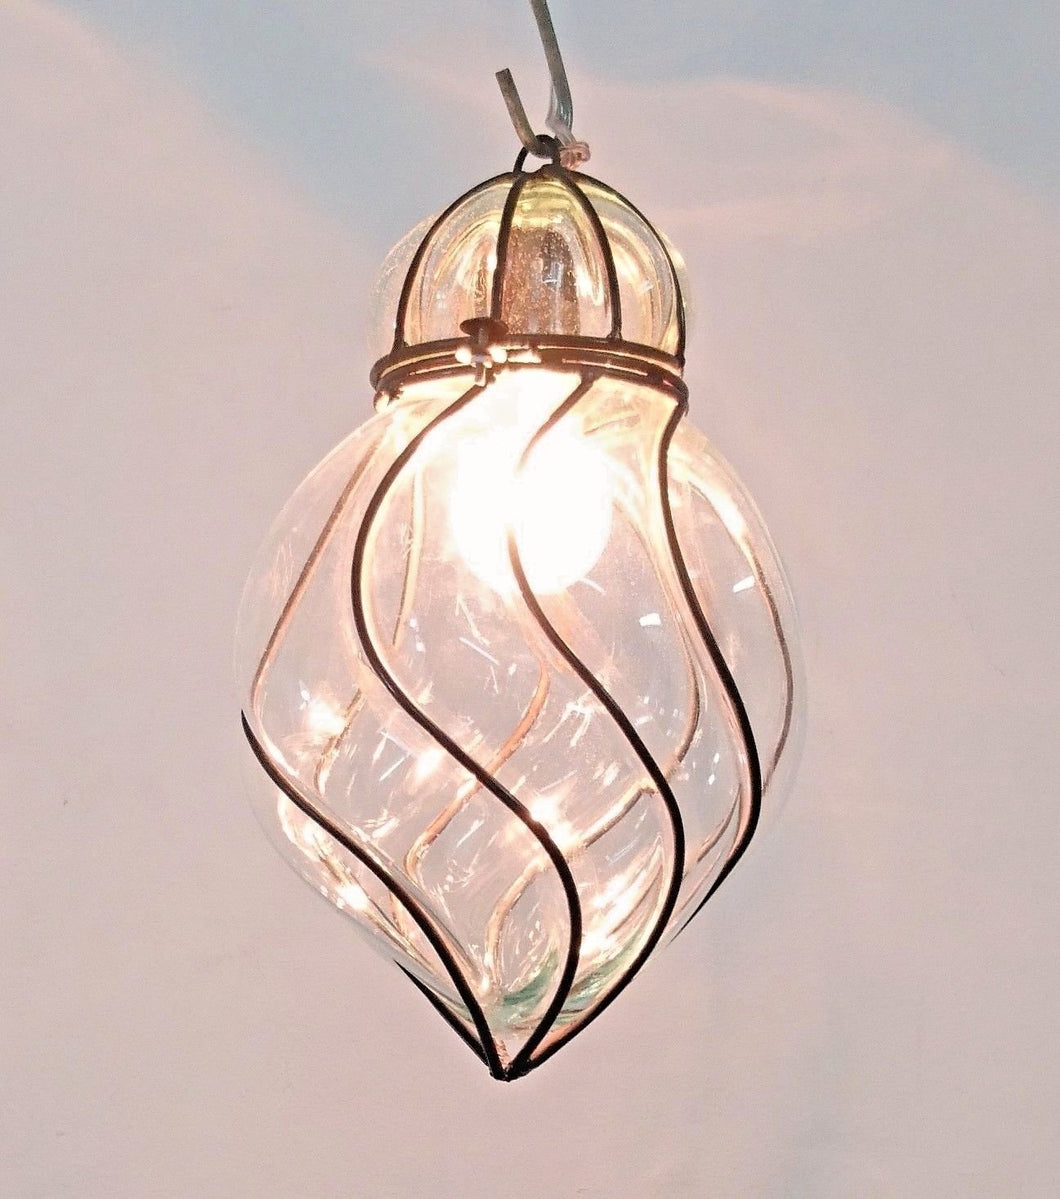 B277 Mouth-Blown Clear Glass Spiral Wrought Iron Hanging Lamp